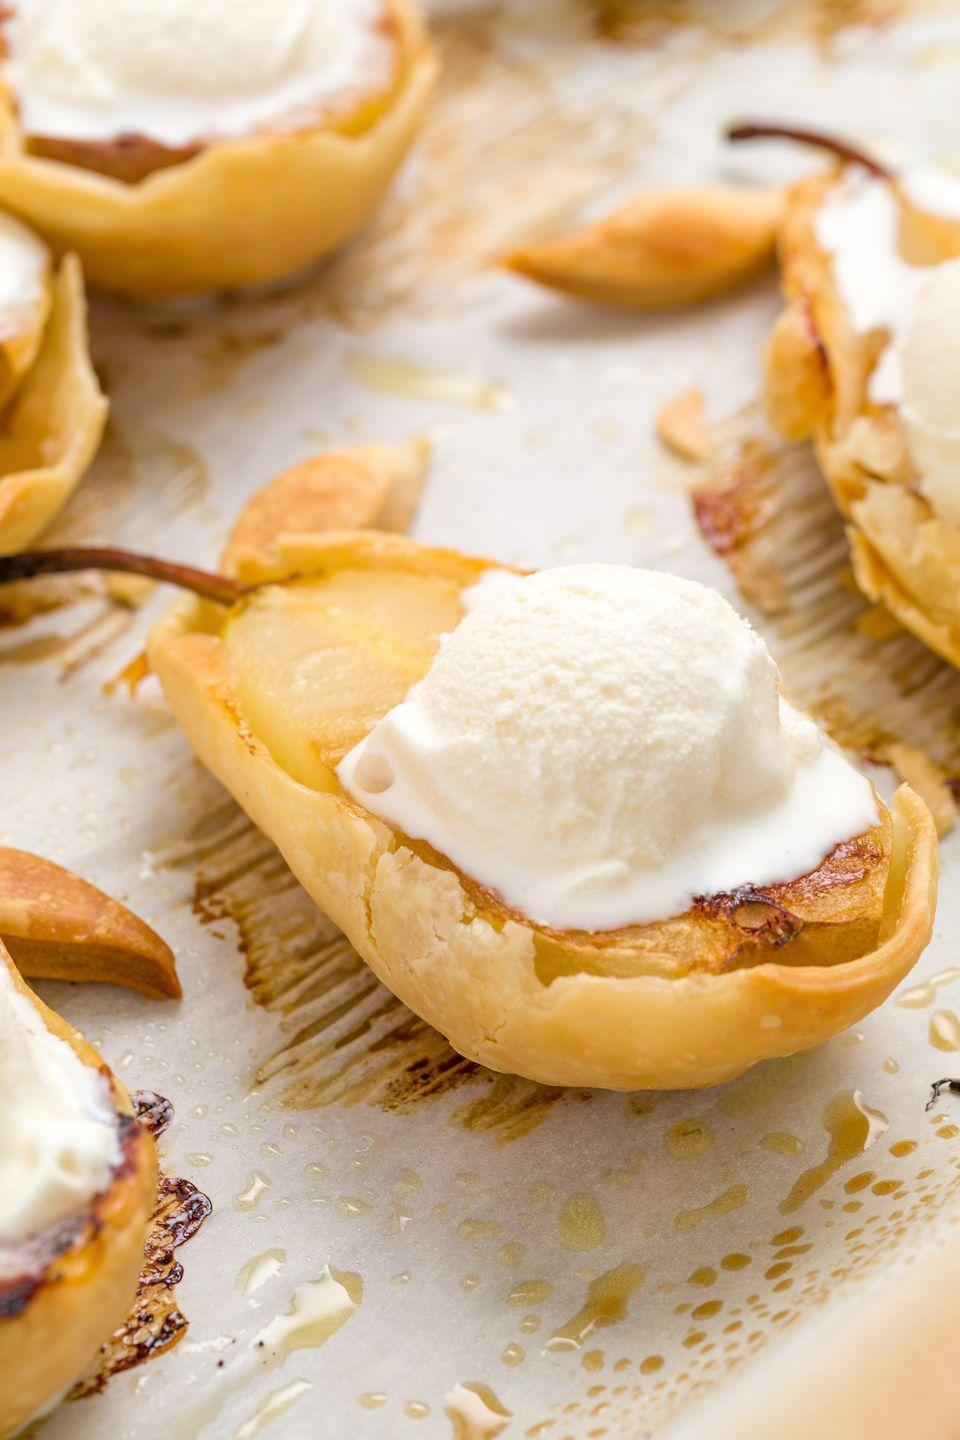 """<p>Apples, it was nice meeting you, but pie crust-covered pears are where it's at.<br></p><p>Get the recipe from <a href=""""https://www.delish.com/cooking/recipe-ideas/recipes/a44158/baked-pear-pies-recipe/"""" rel=""""nofollow noopener"""" target=""""_blank"""" data-ylk=""""slk:Delish"""" class=""""link rapid-noclick-resp"""">Delish</a>.</p>"""